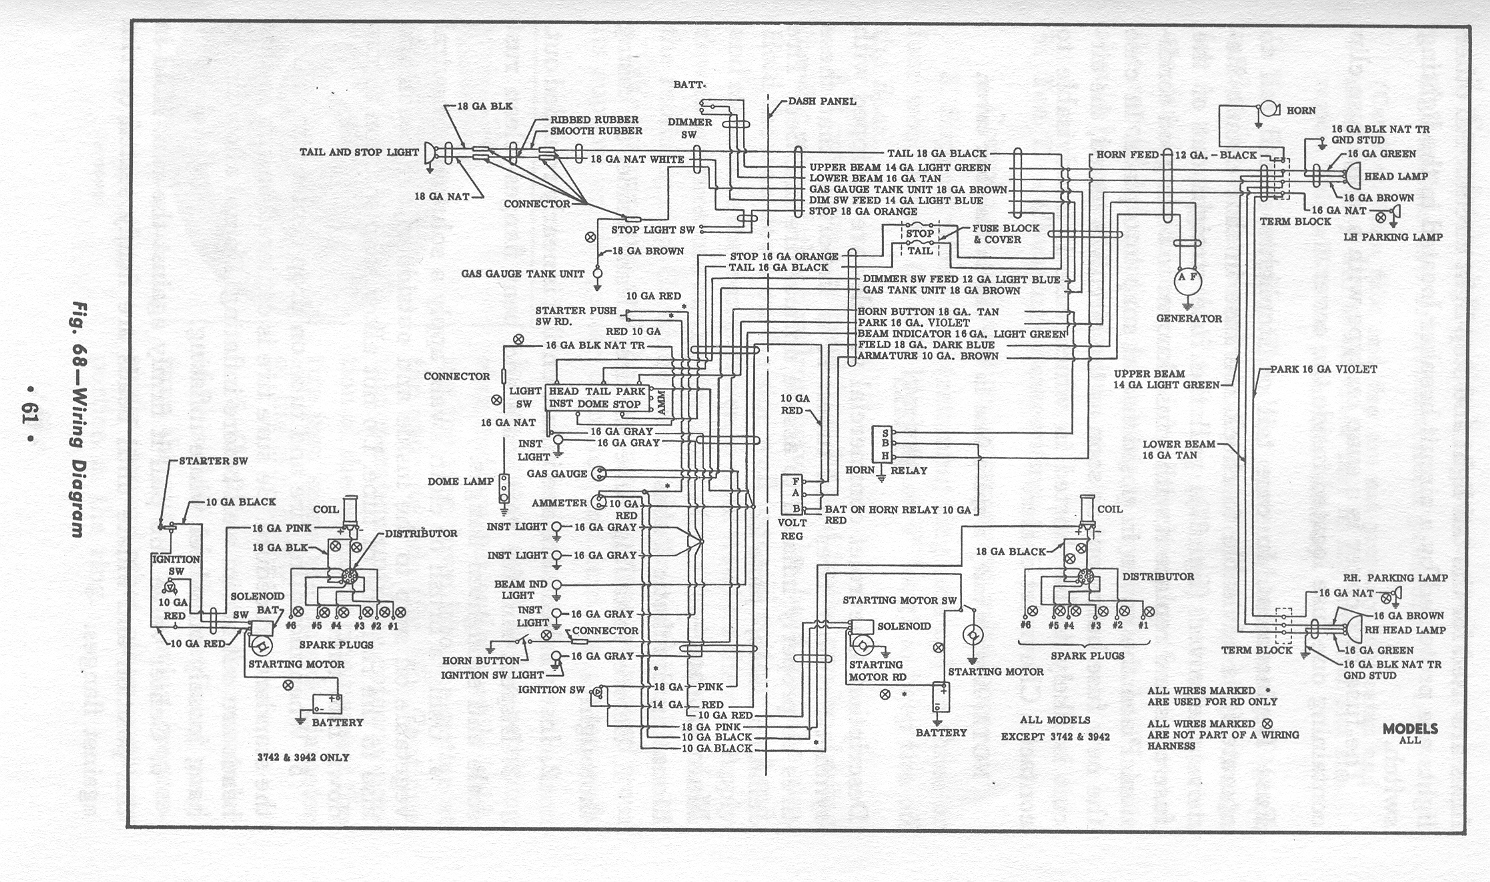 hight resolution of 83 chevy c10 wiring diagram wiring diagram paper 1984 chevy c10 wiring diagram 1965 gm stereo